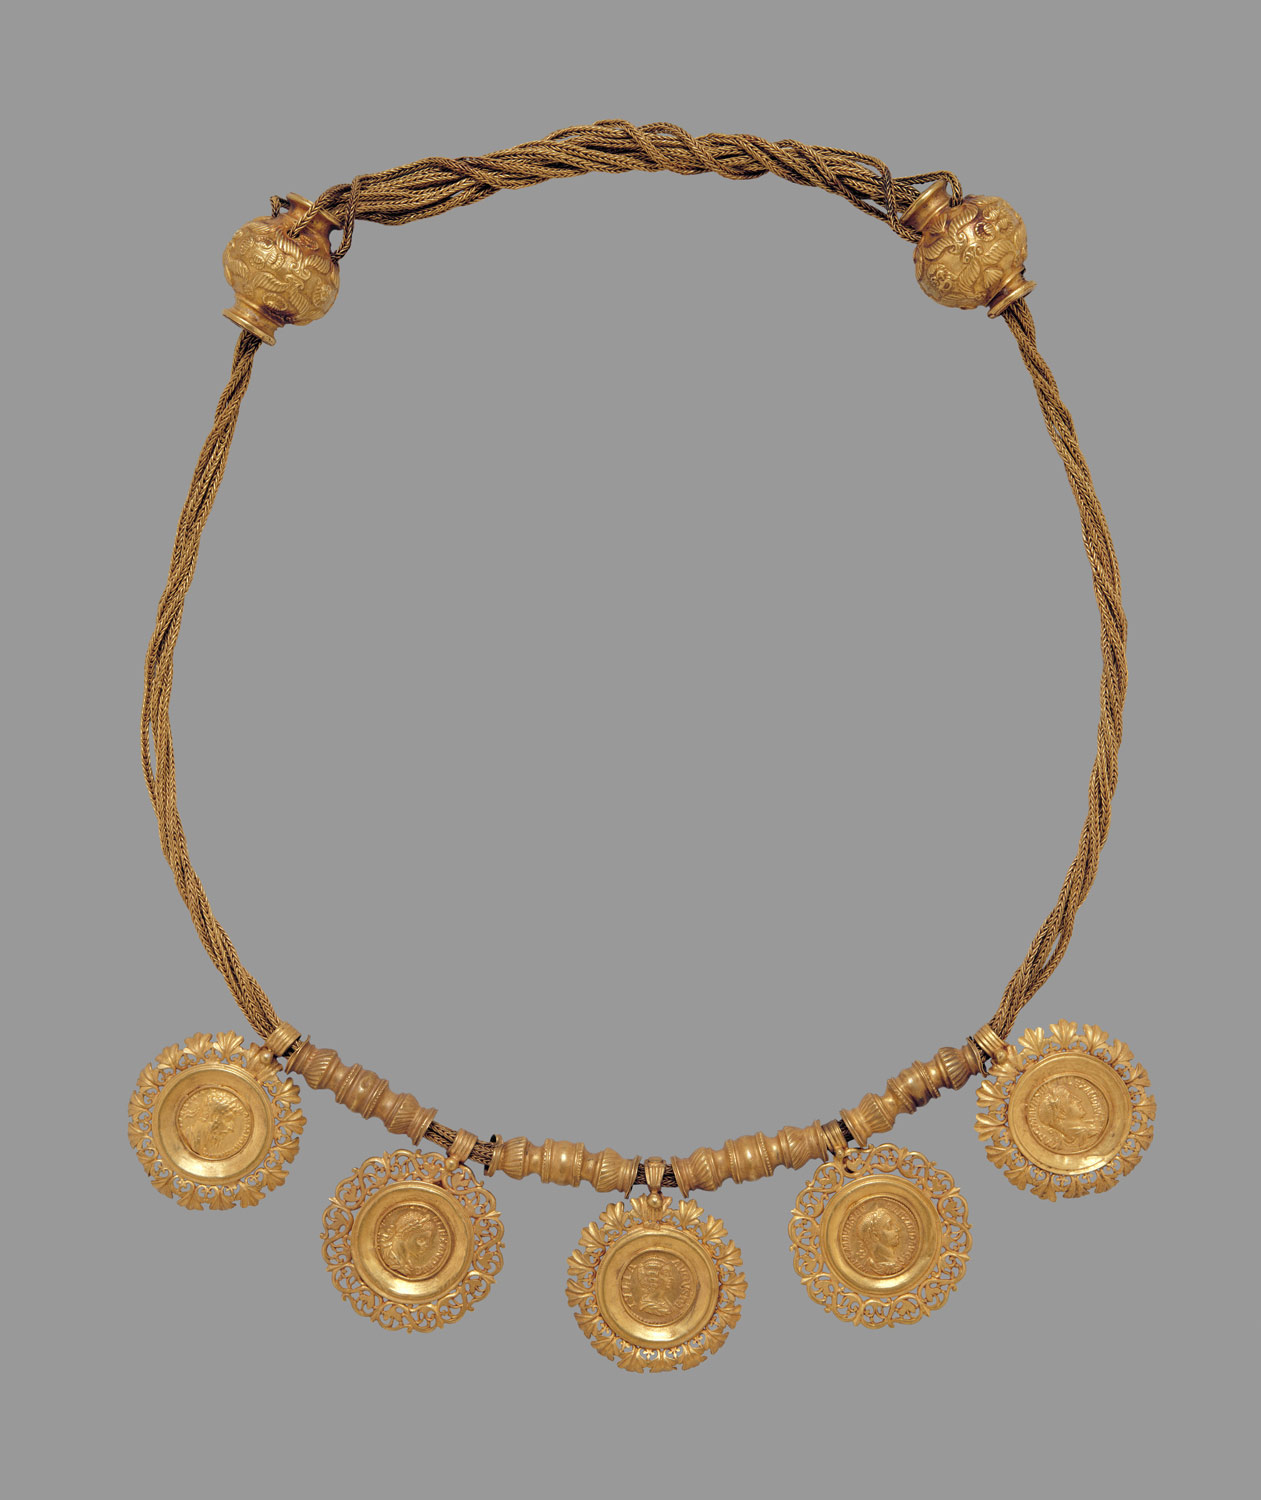 fc3322157dd4 ... Collar with medallions containing coins of emperors ...